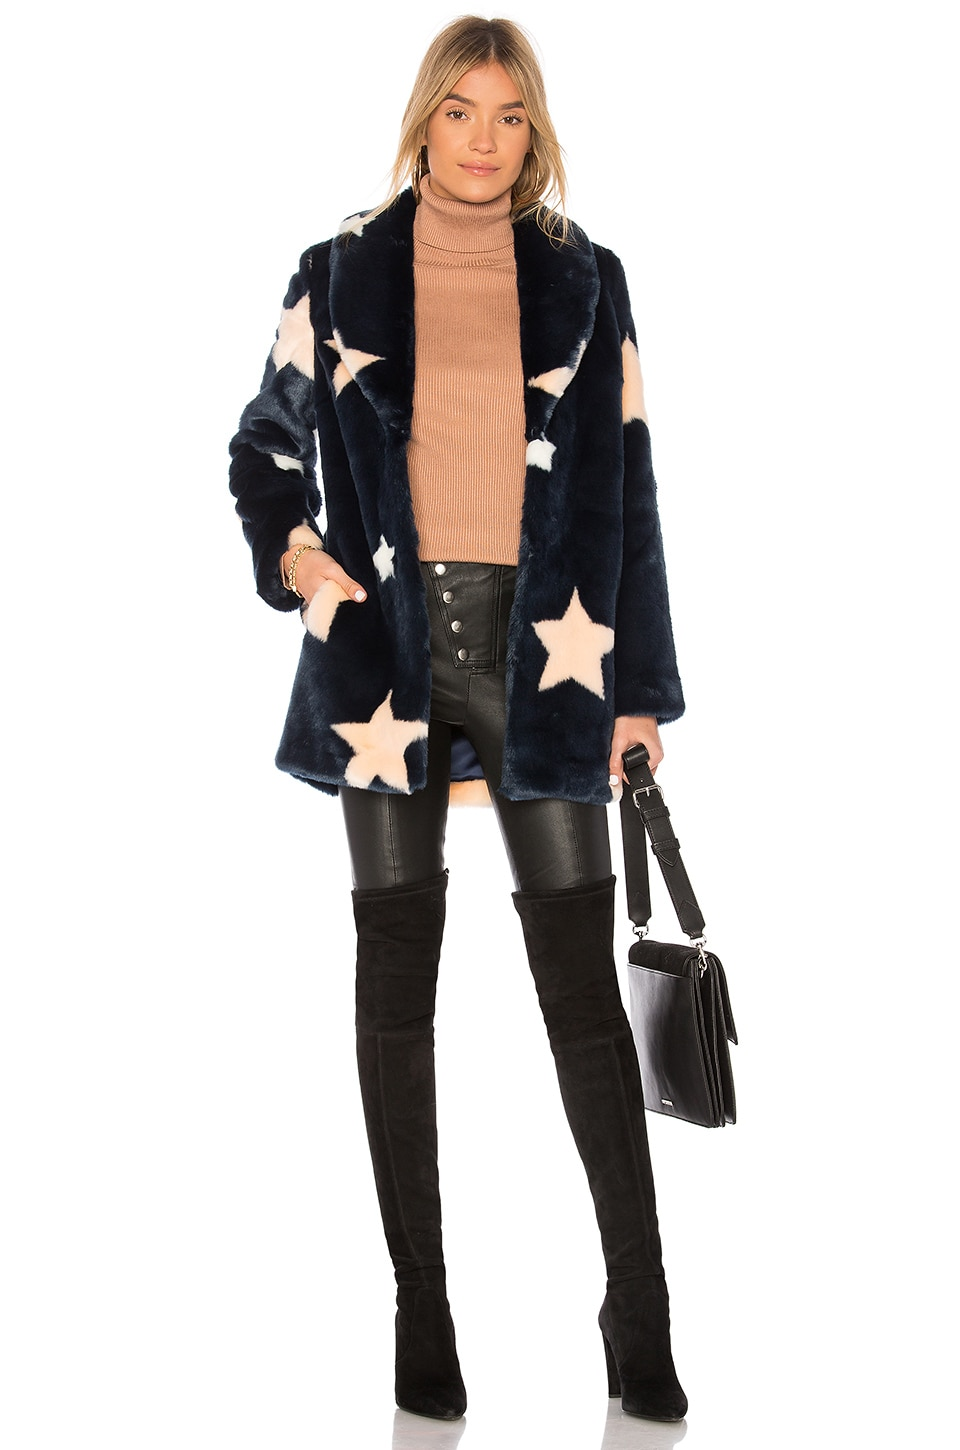 EAVES Althea Faux Fur Coat in Cosmic